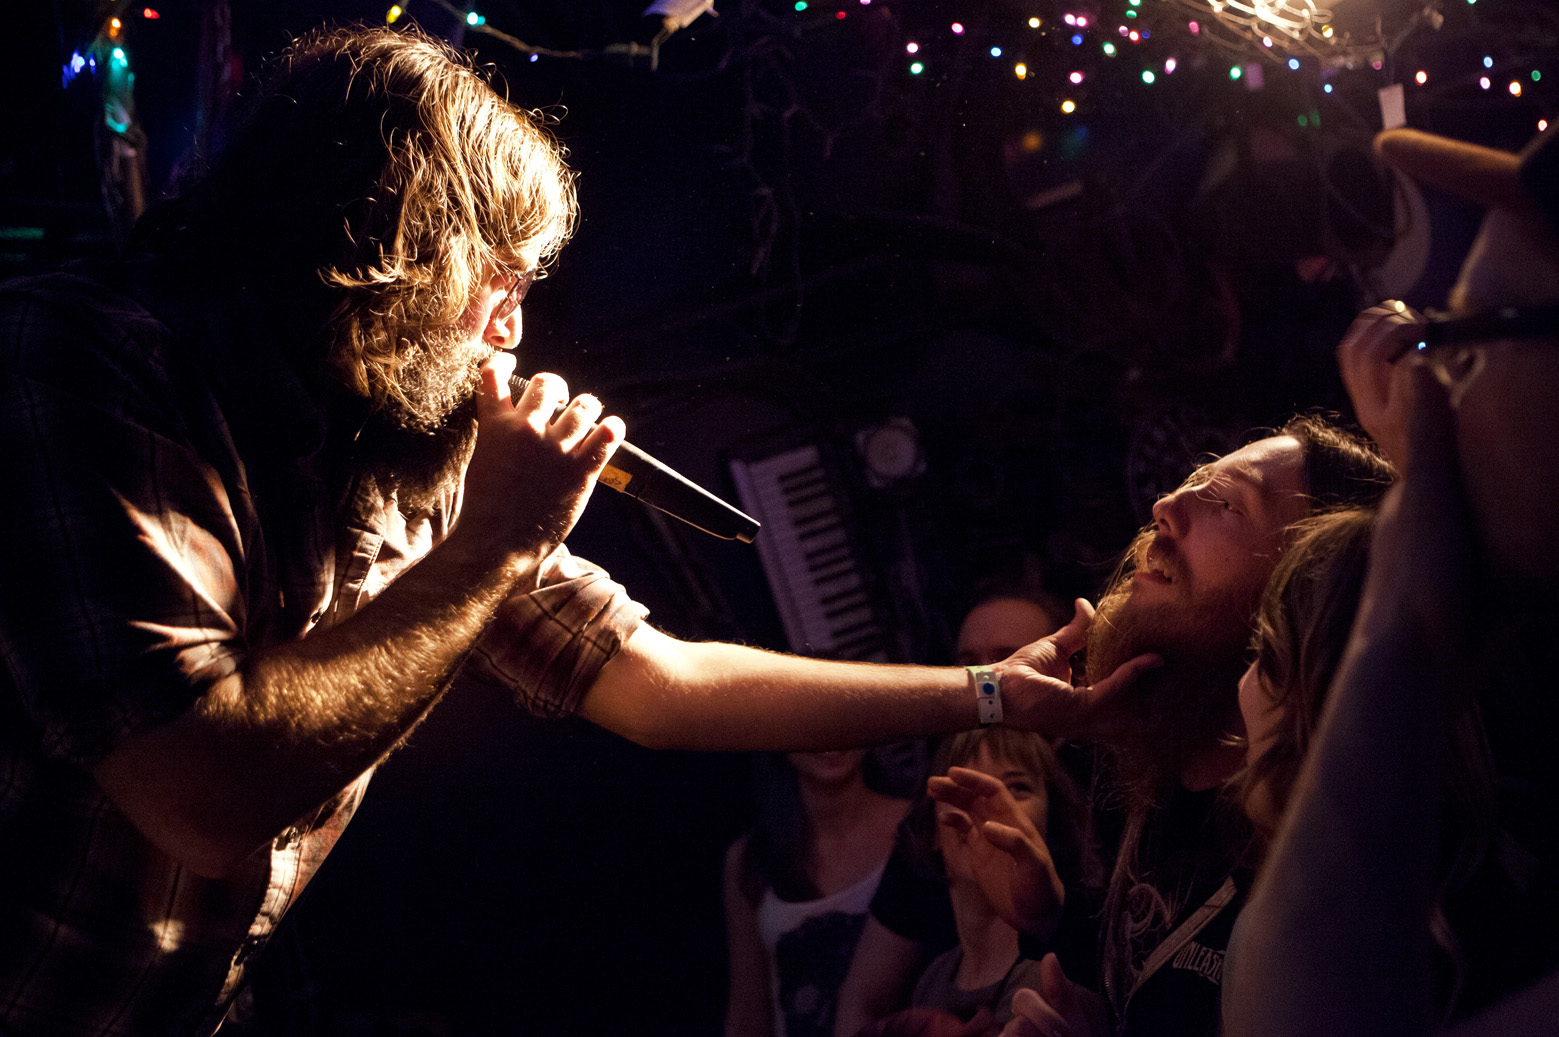 Lead singer of The Beards Jonathan Beardraven touches a fan's beard as the band preforms a song about beards.